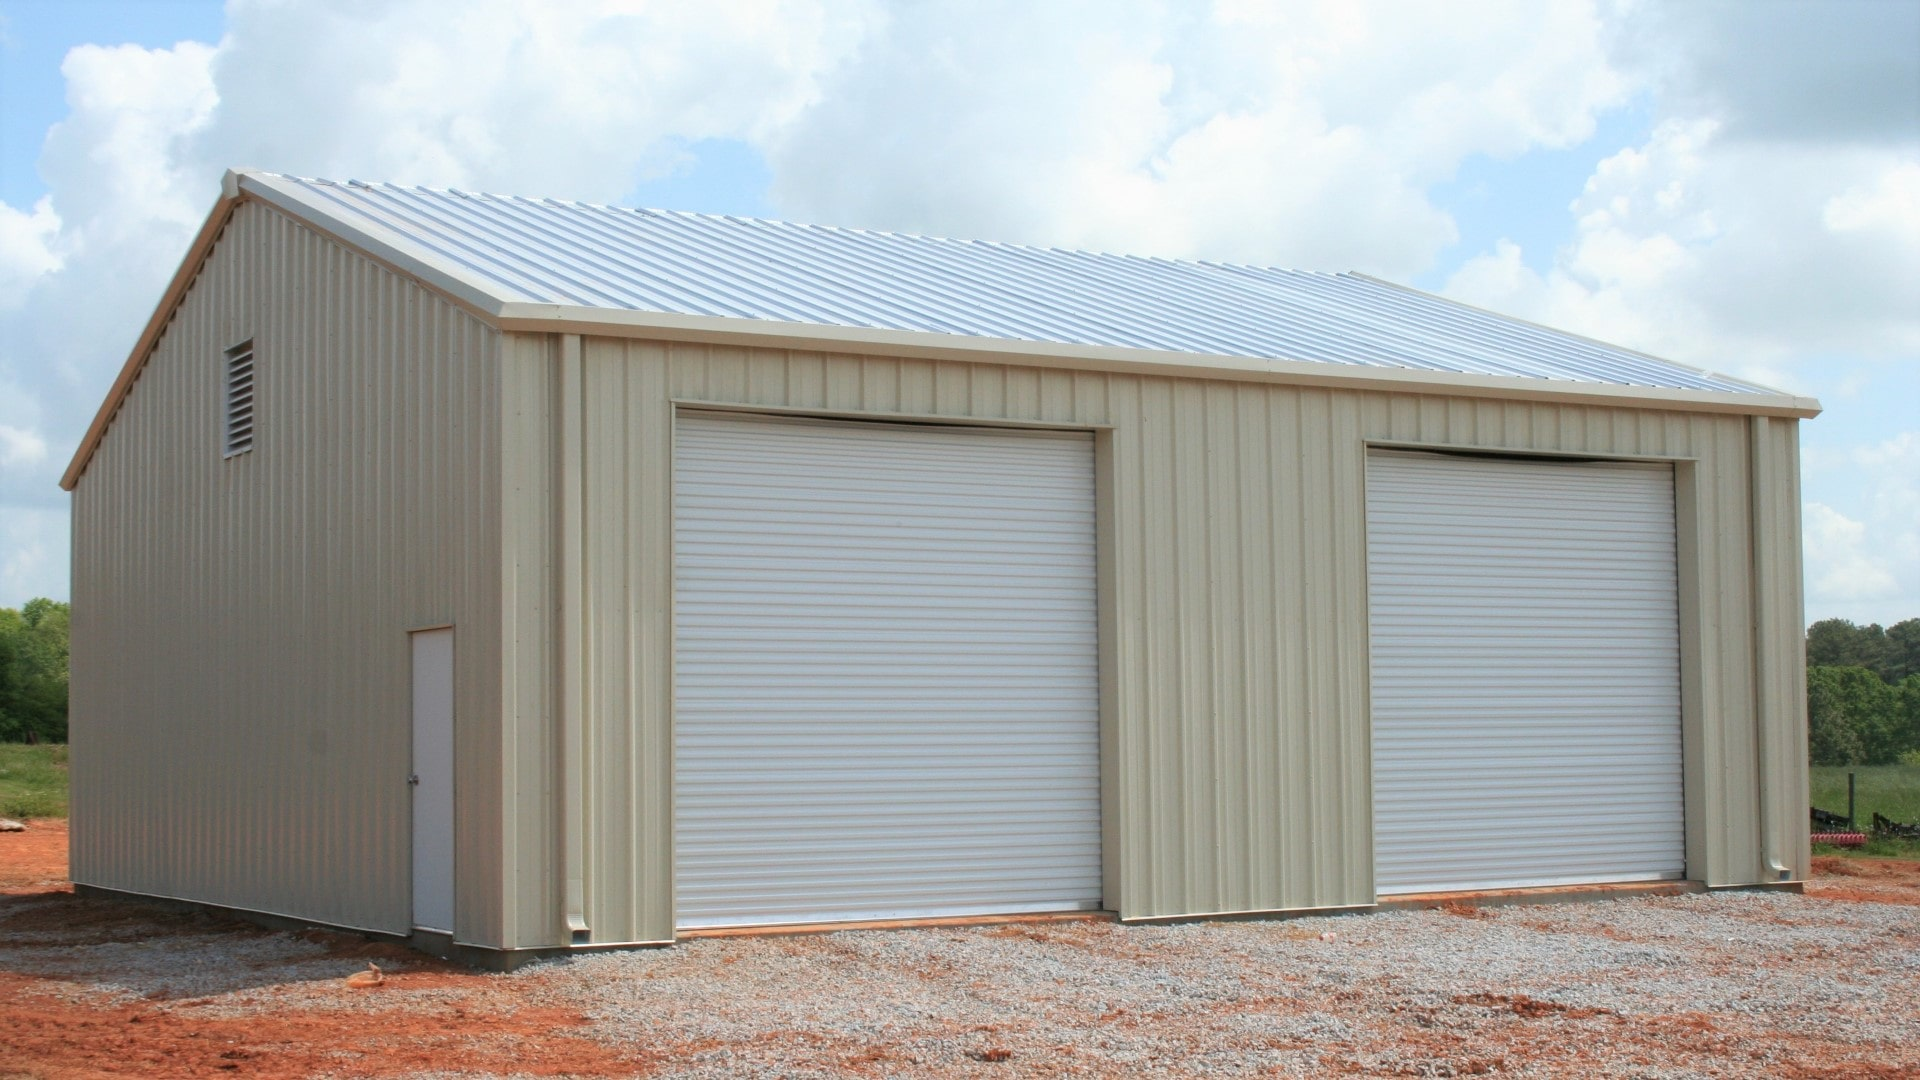 Tan metal garage with tan trim, rollup doors, walk door, and louver vent. View from front sidewall.